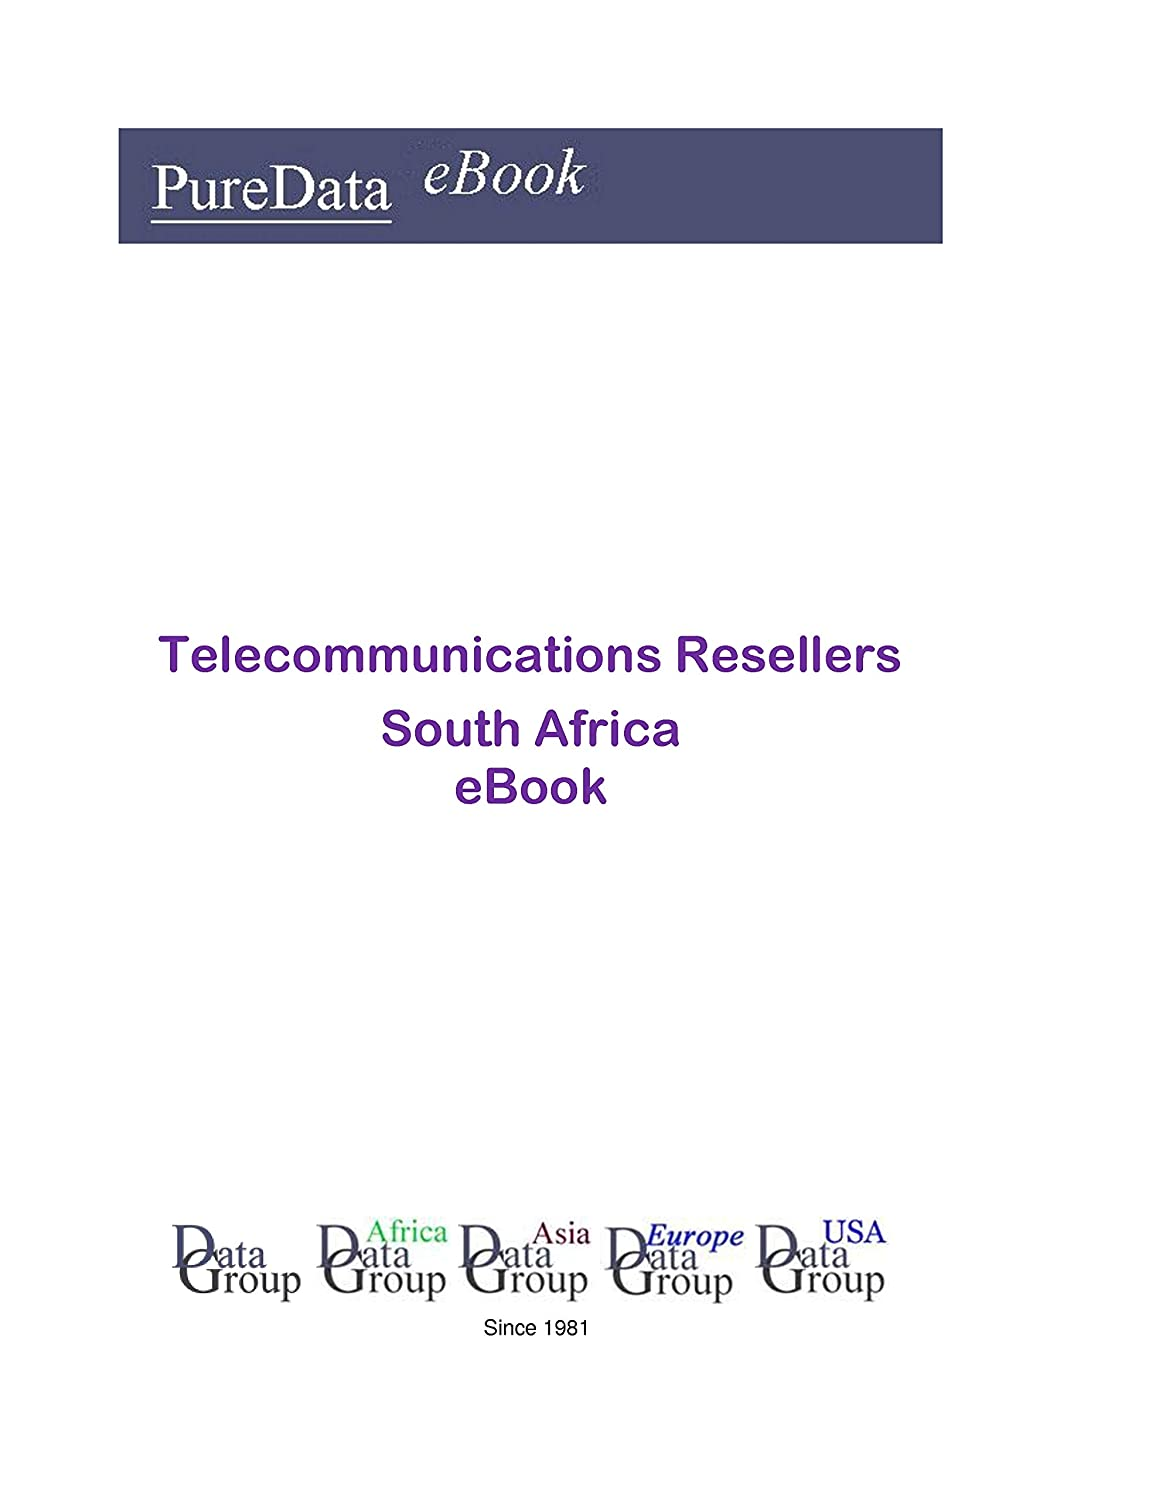 Telecommunications Resellers in South Africa: Product